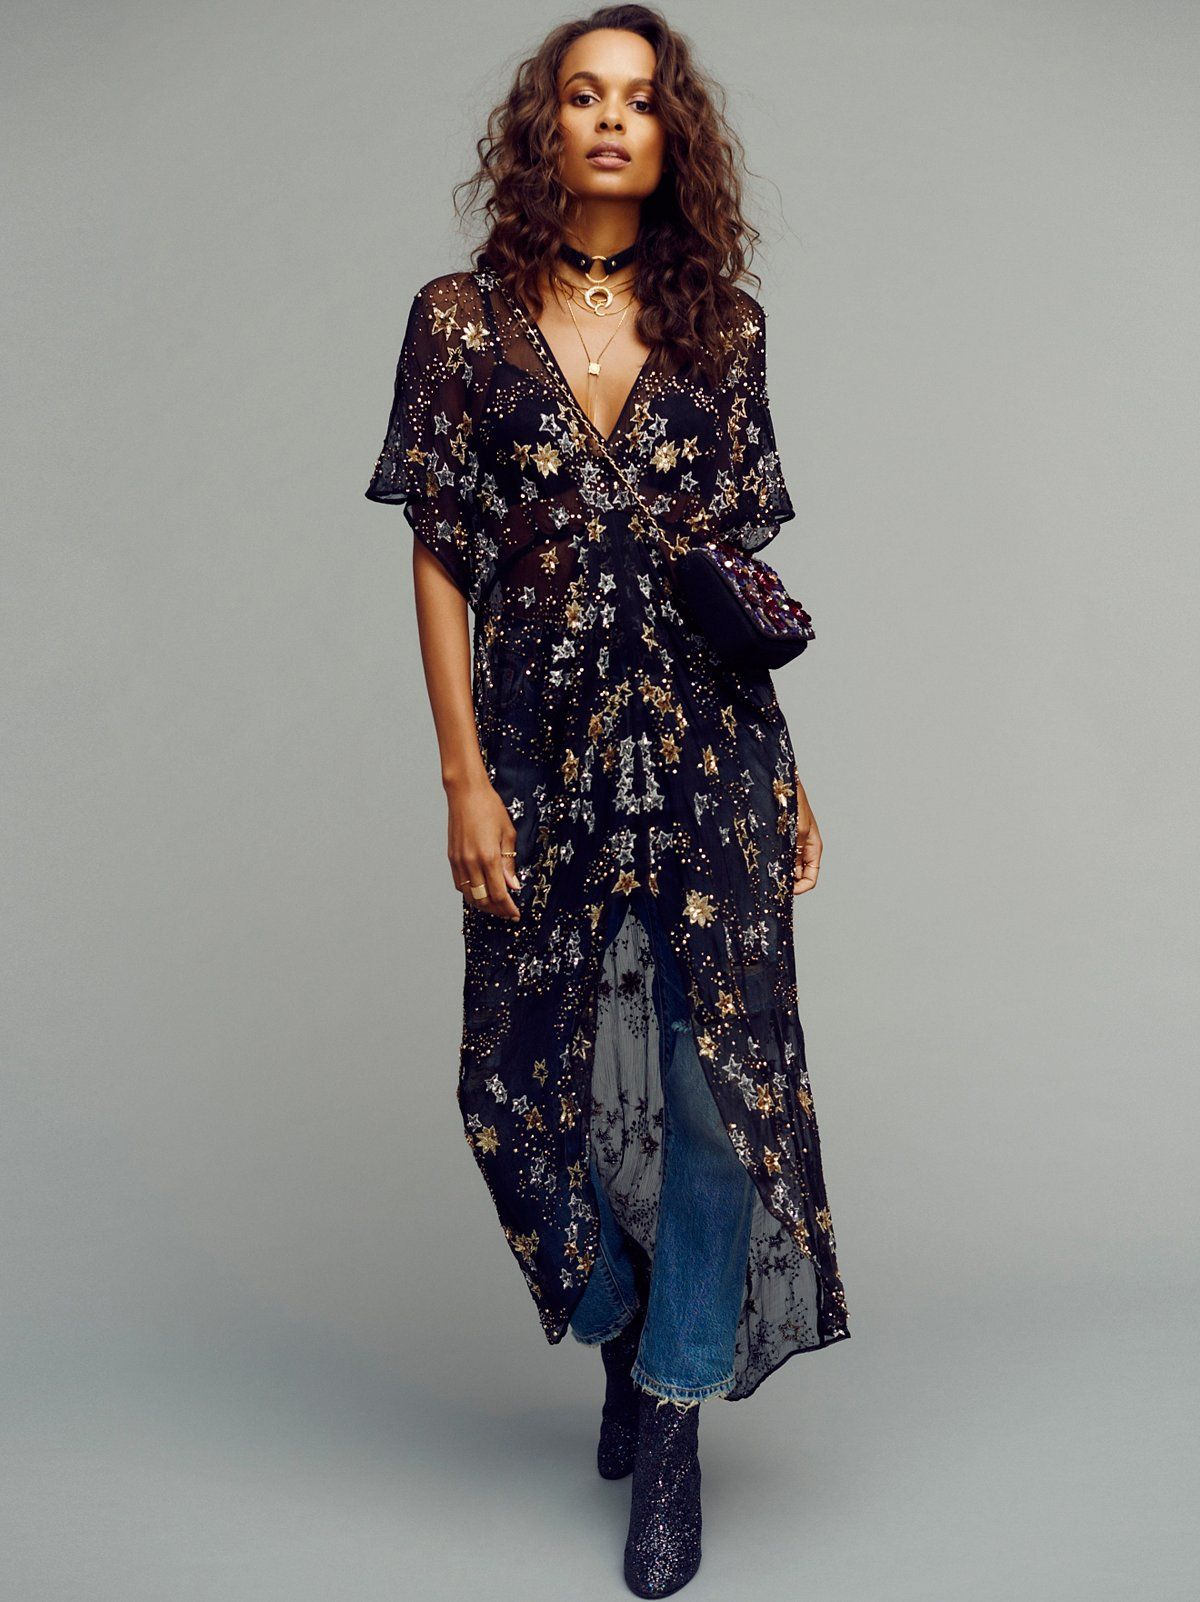 Freepeople starry night embellished maxi top u obsessed with this